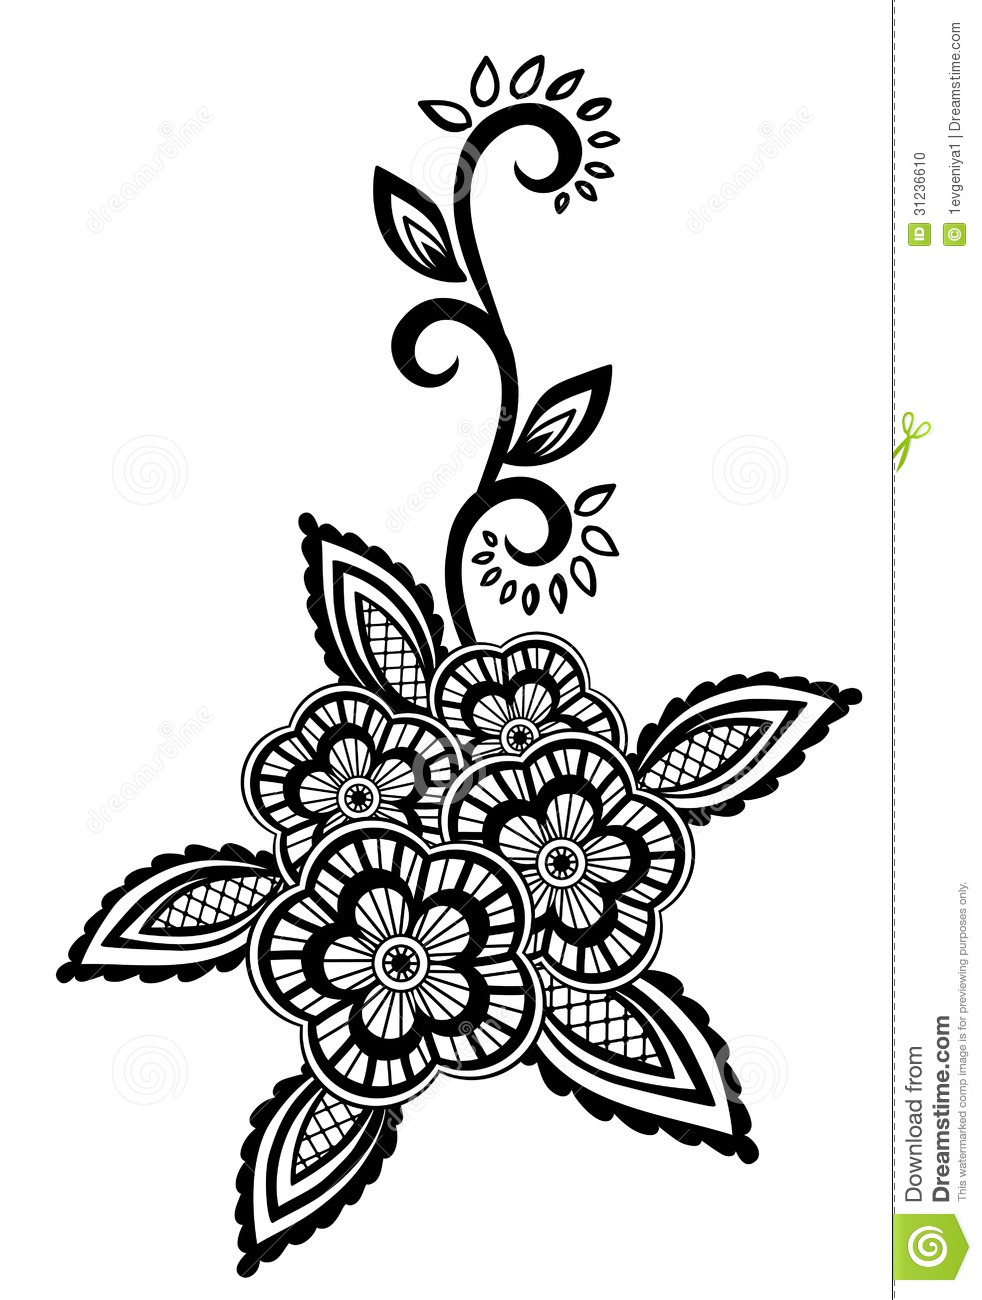 Beautiful floral element black and white flowers and leaves design beautiful floral element black and white flowers and leaves design element with imitation guipure embroidery mightylinksfo Choice Image